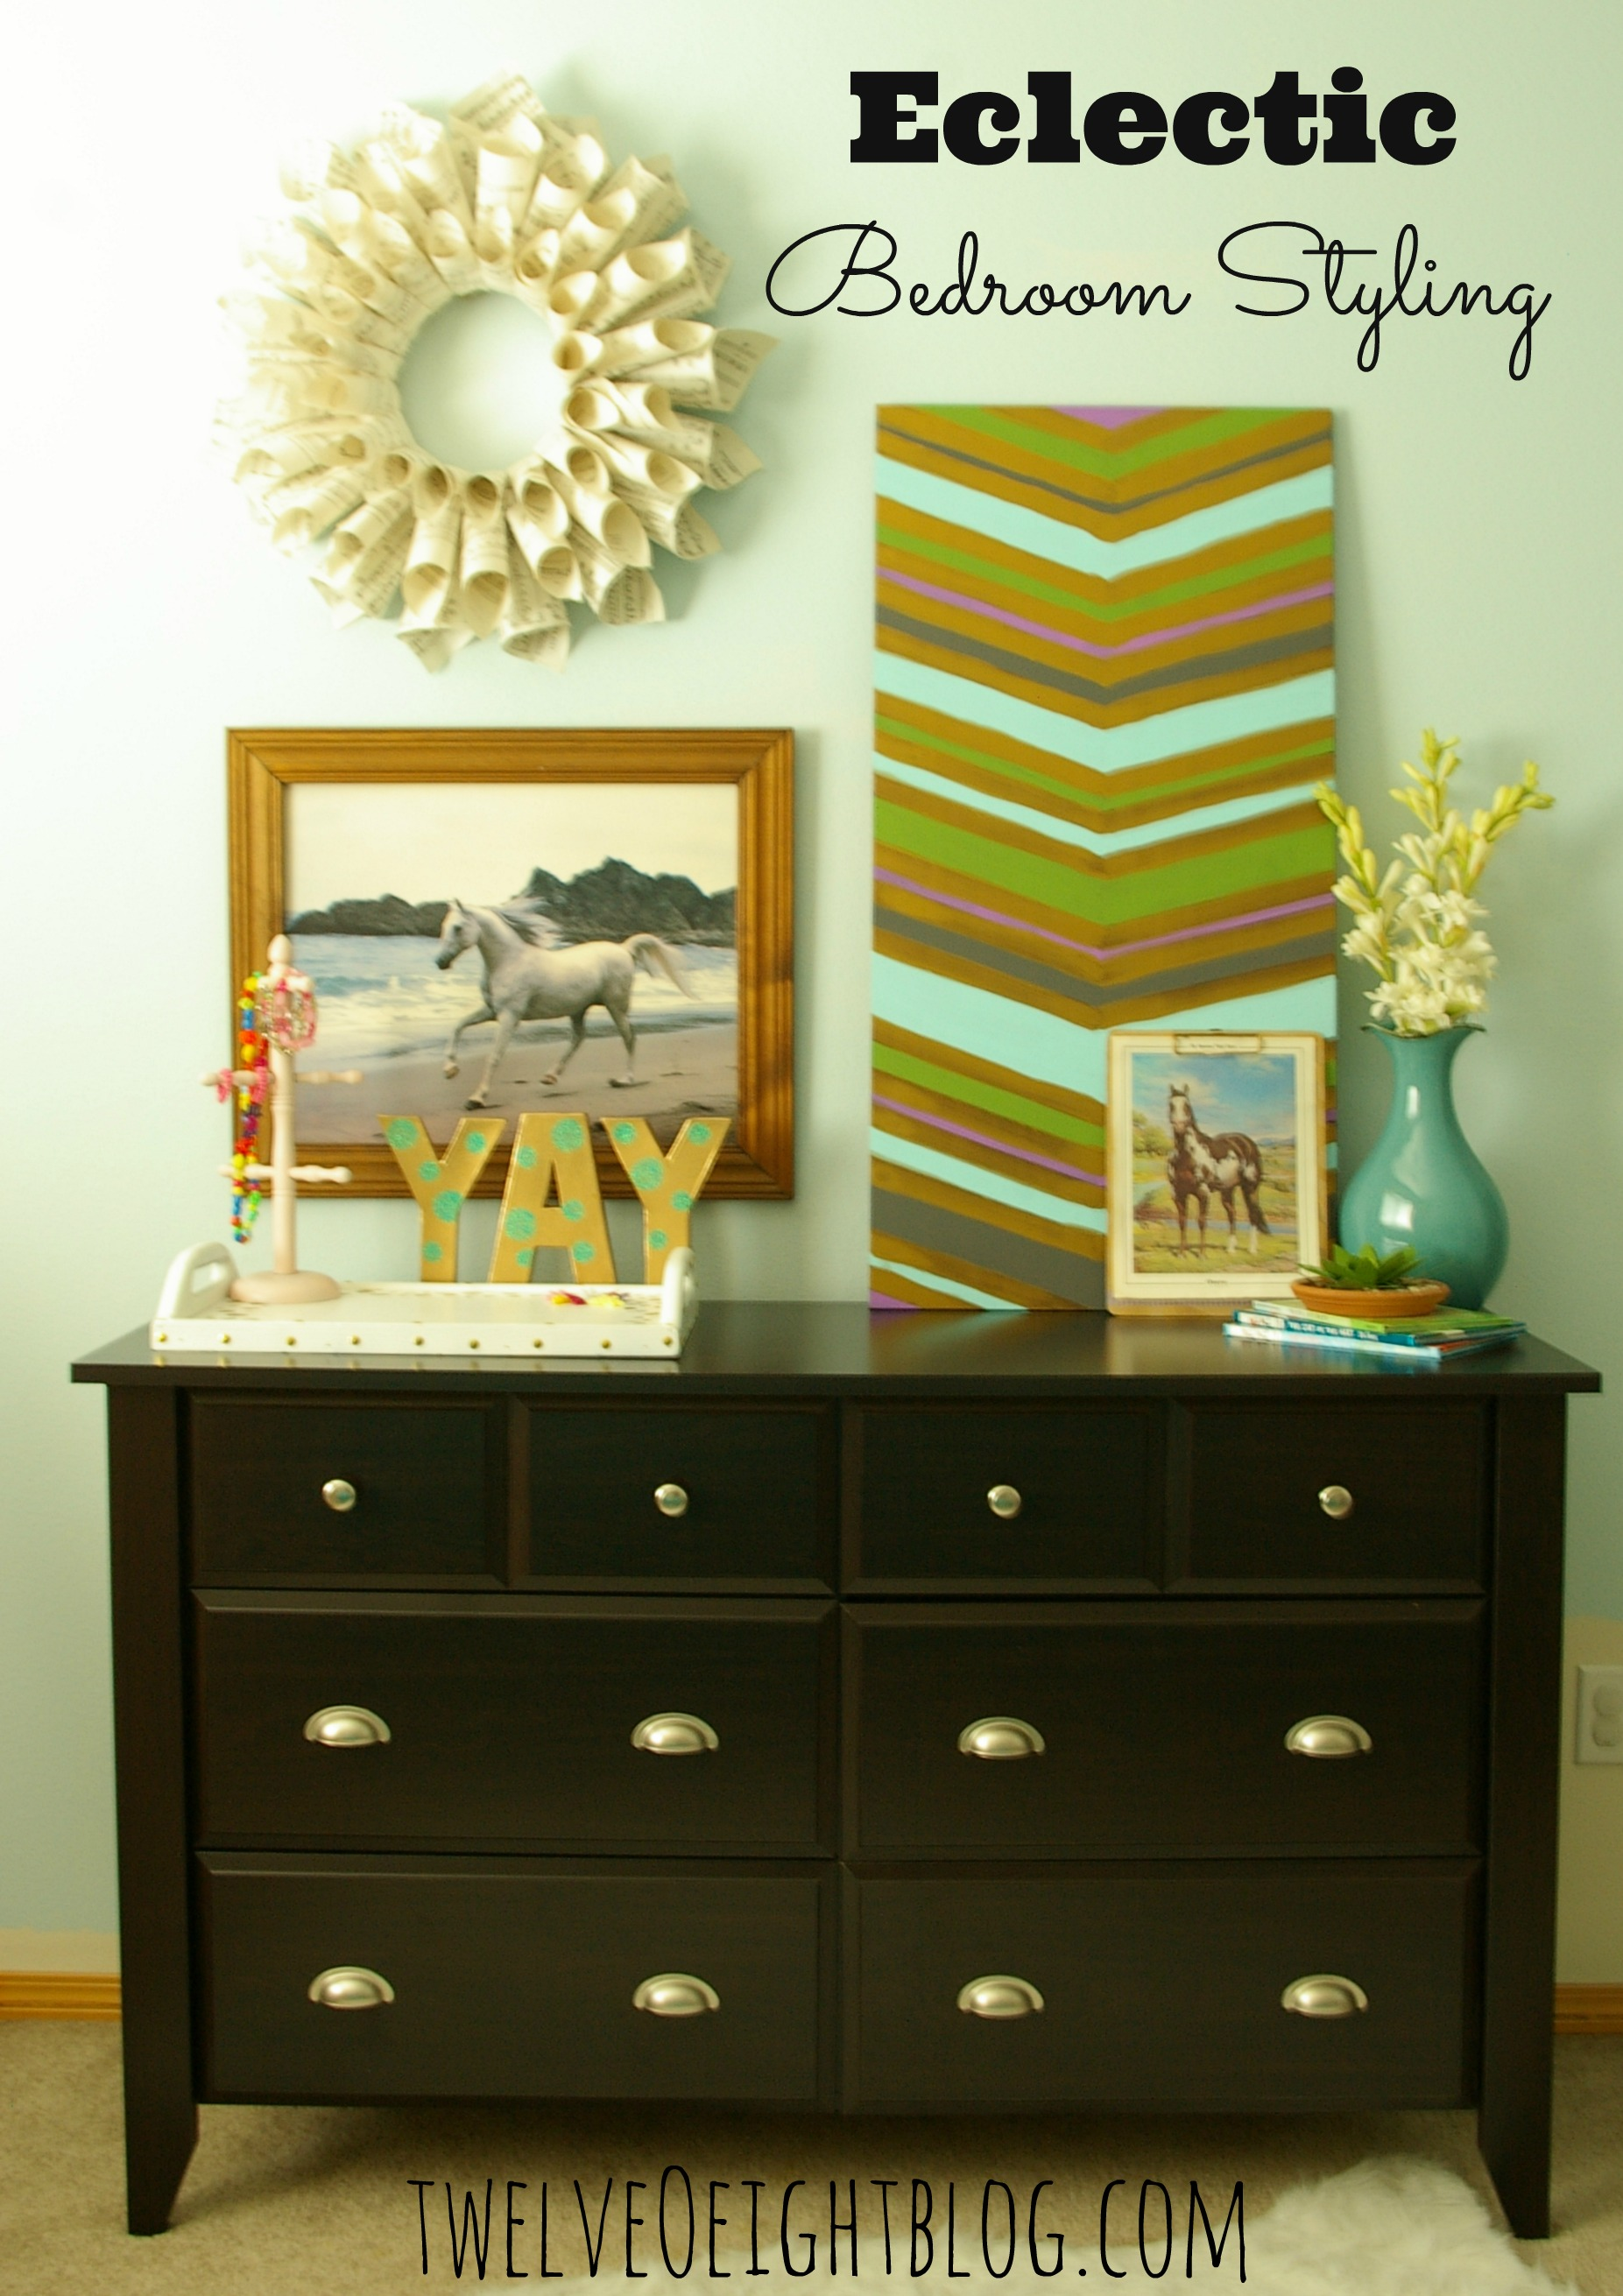 Eclectic Bedroom Styling  A New Dresser